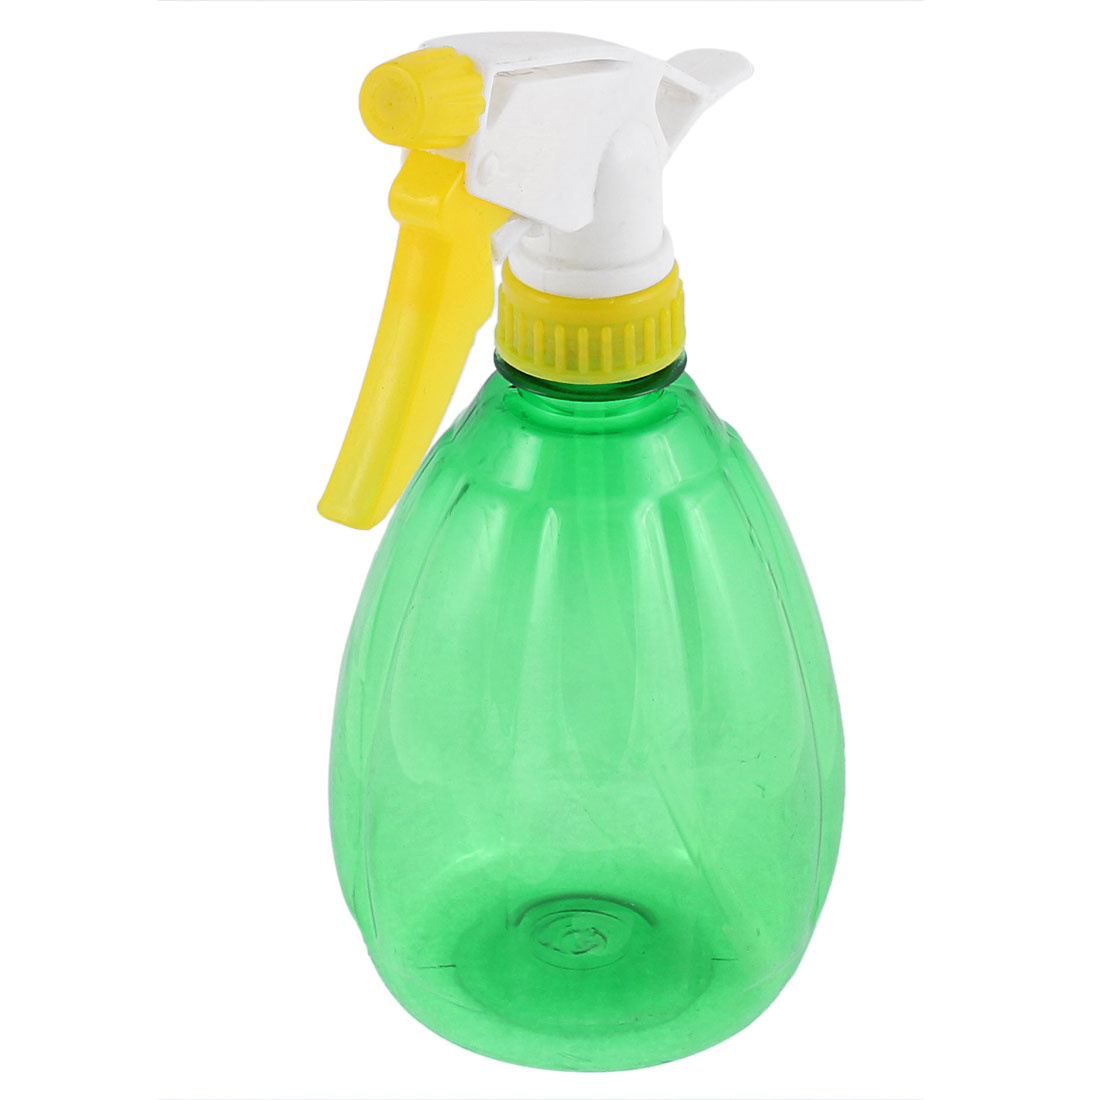 Plastic Hairdressing Flowers Plants Watering Water Trigger Sprayer Spray Bottle Green 500ml